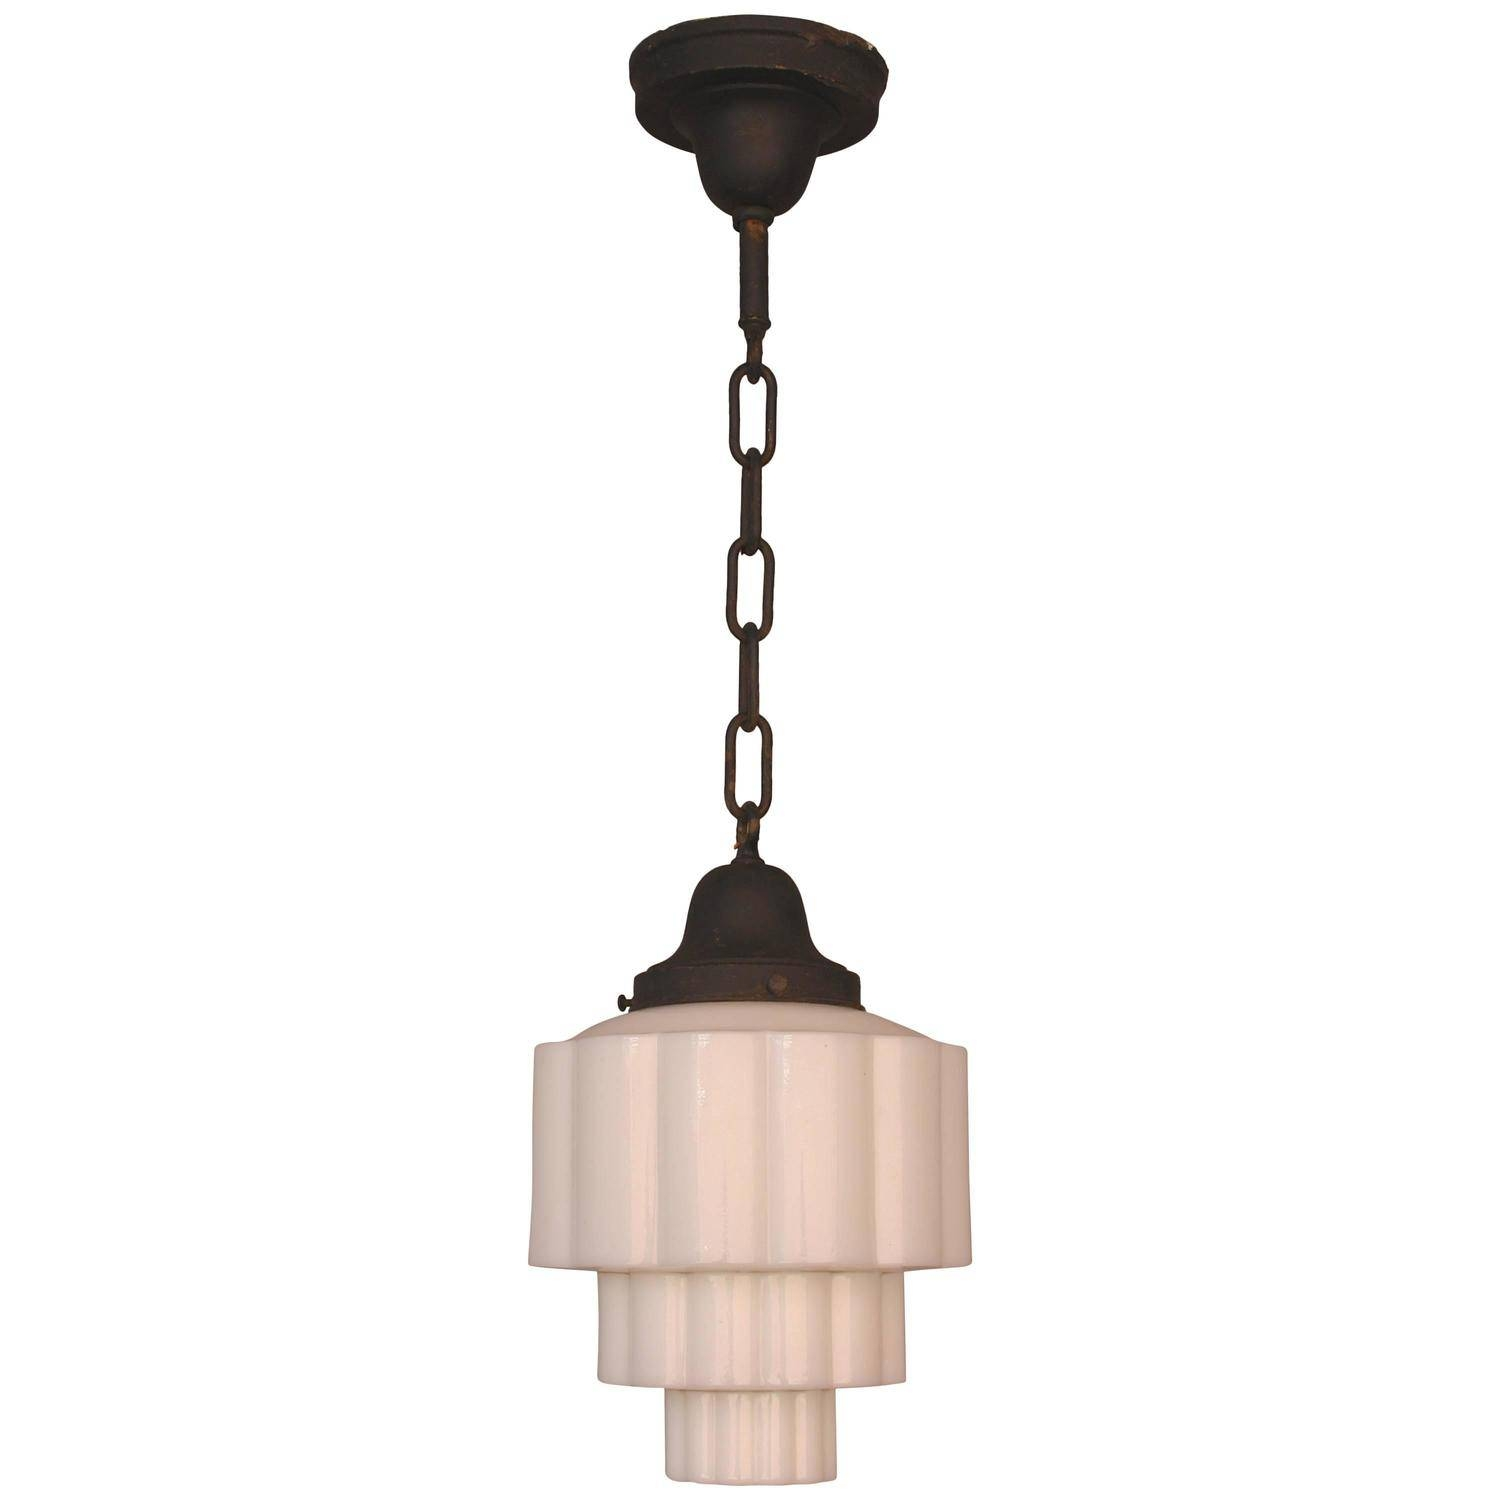 Art Deco Skyscraper Milk Glass Pendant Light, 1930S At 1Stdibs within Milk Glass Lights Fixtures (Image 2 of 15)